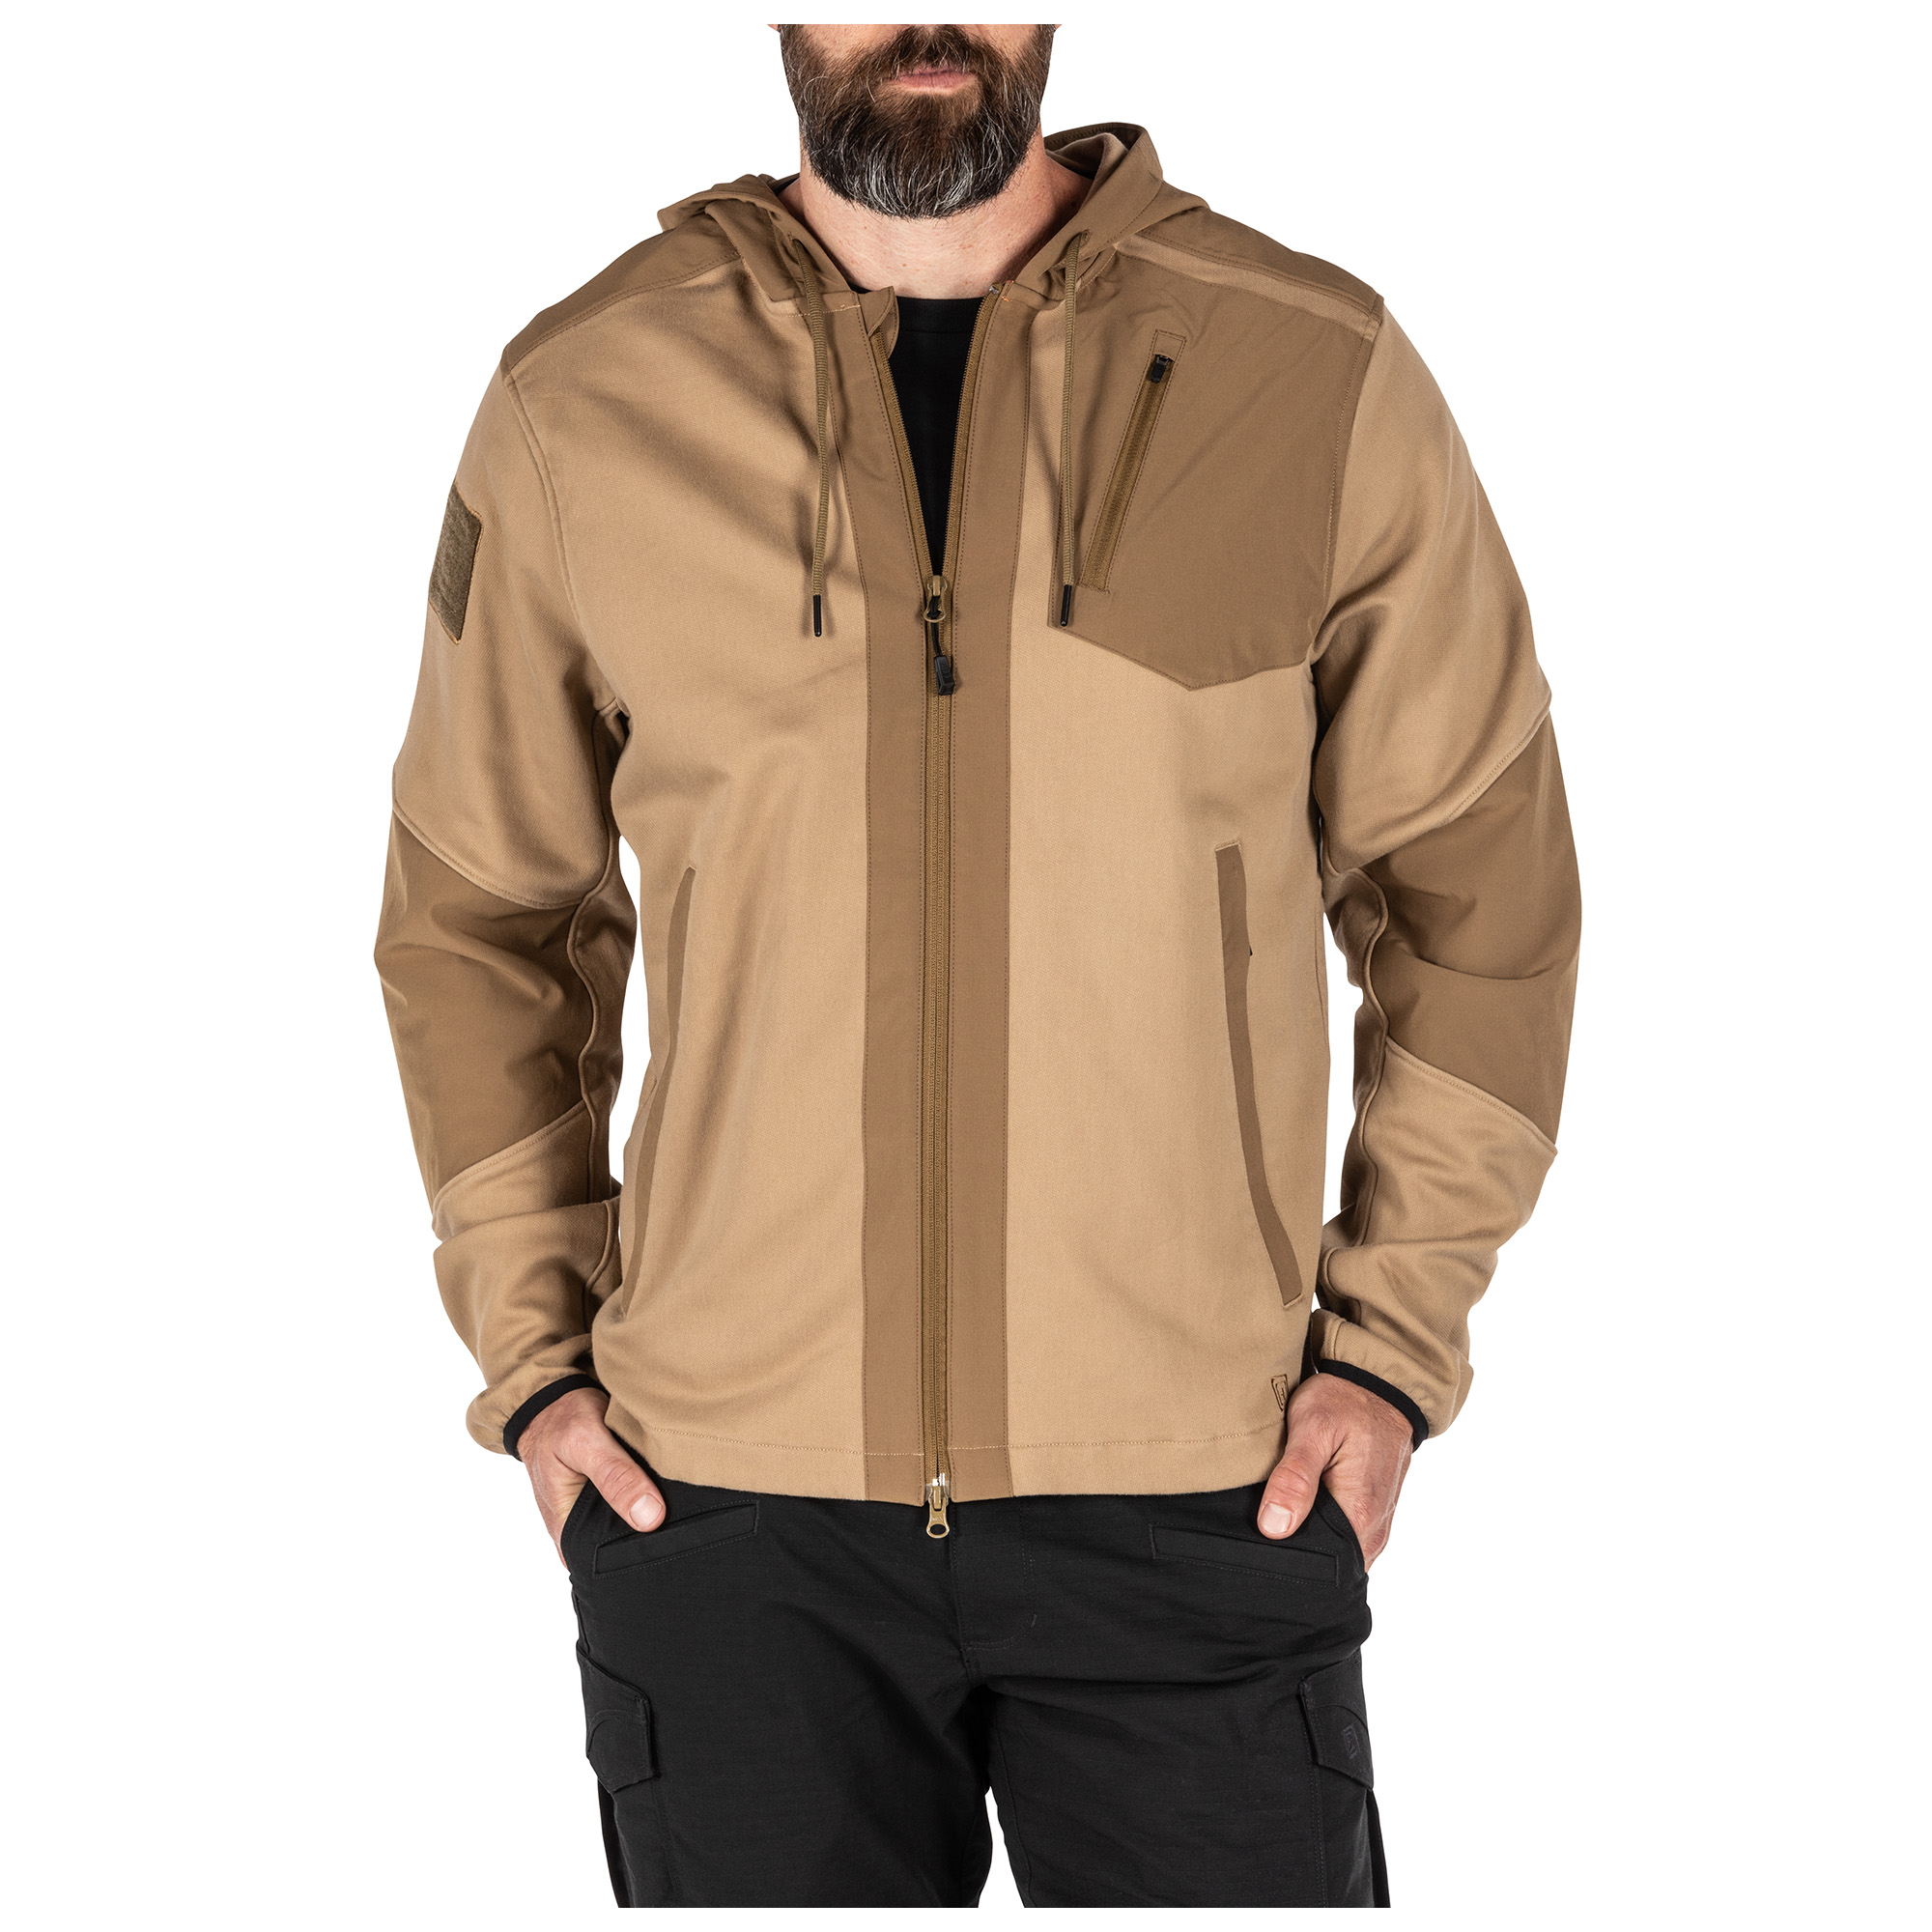 5.11 Tactical Men's Rappel Jacket (Khaki/Tan)